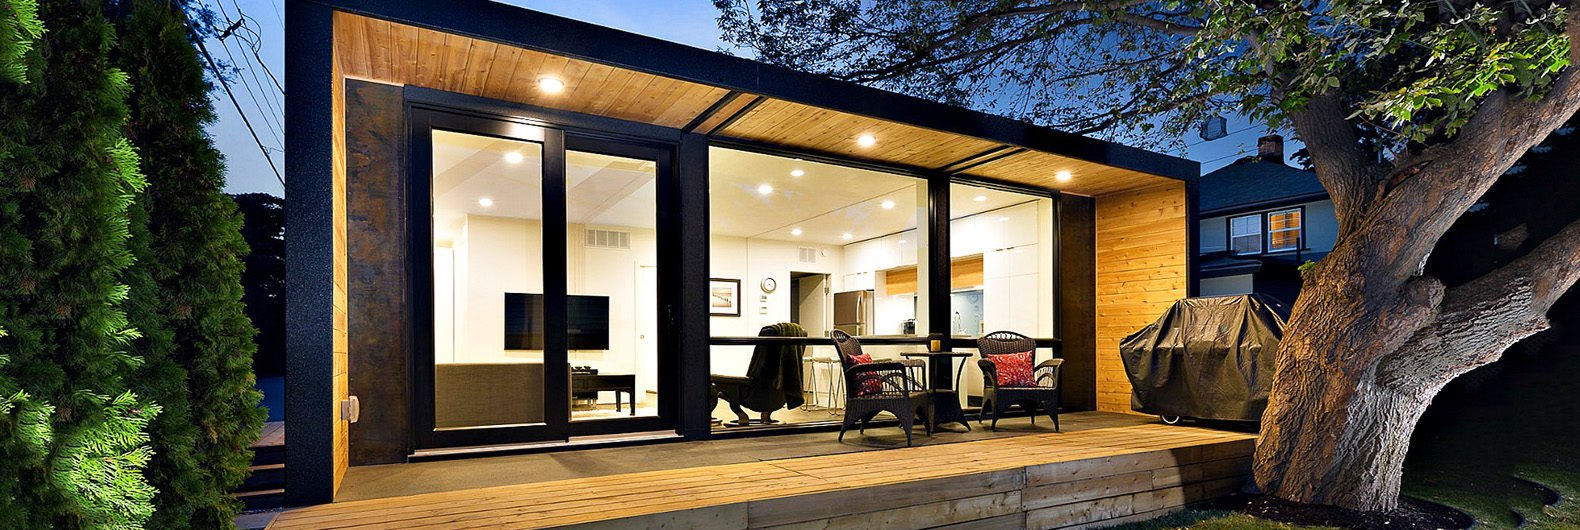 Honomobo S Container Homes Can Be Shipped Anywhere In North America Inhabitat Green Design